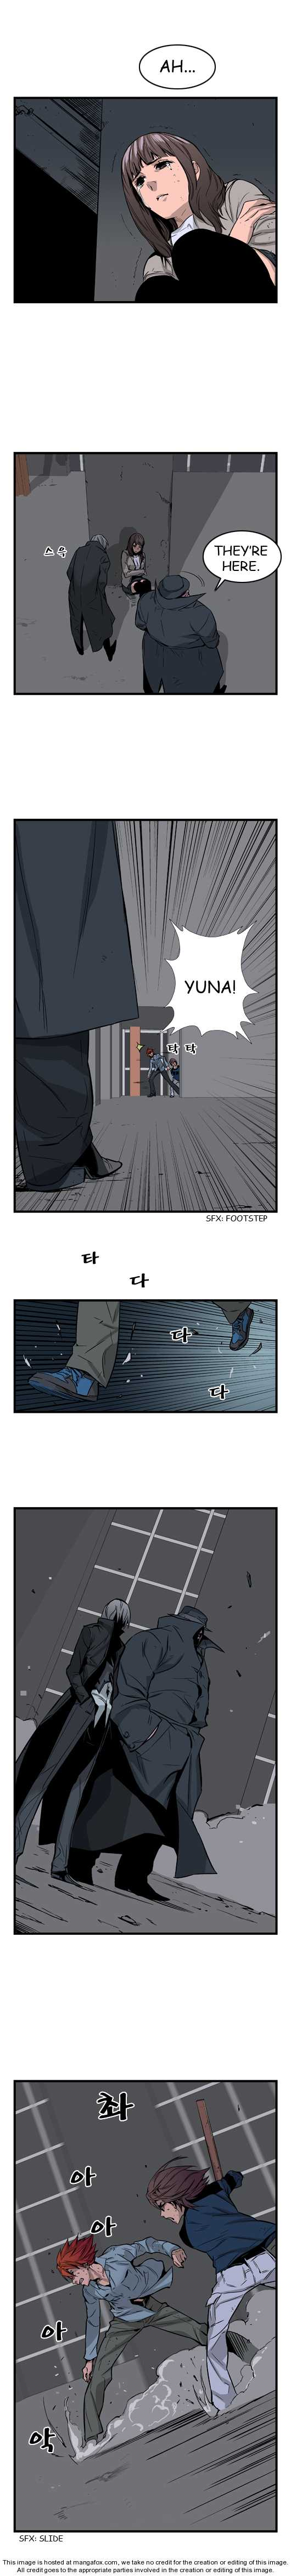 Noblesse 28 Page 4